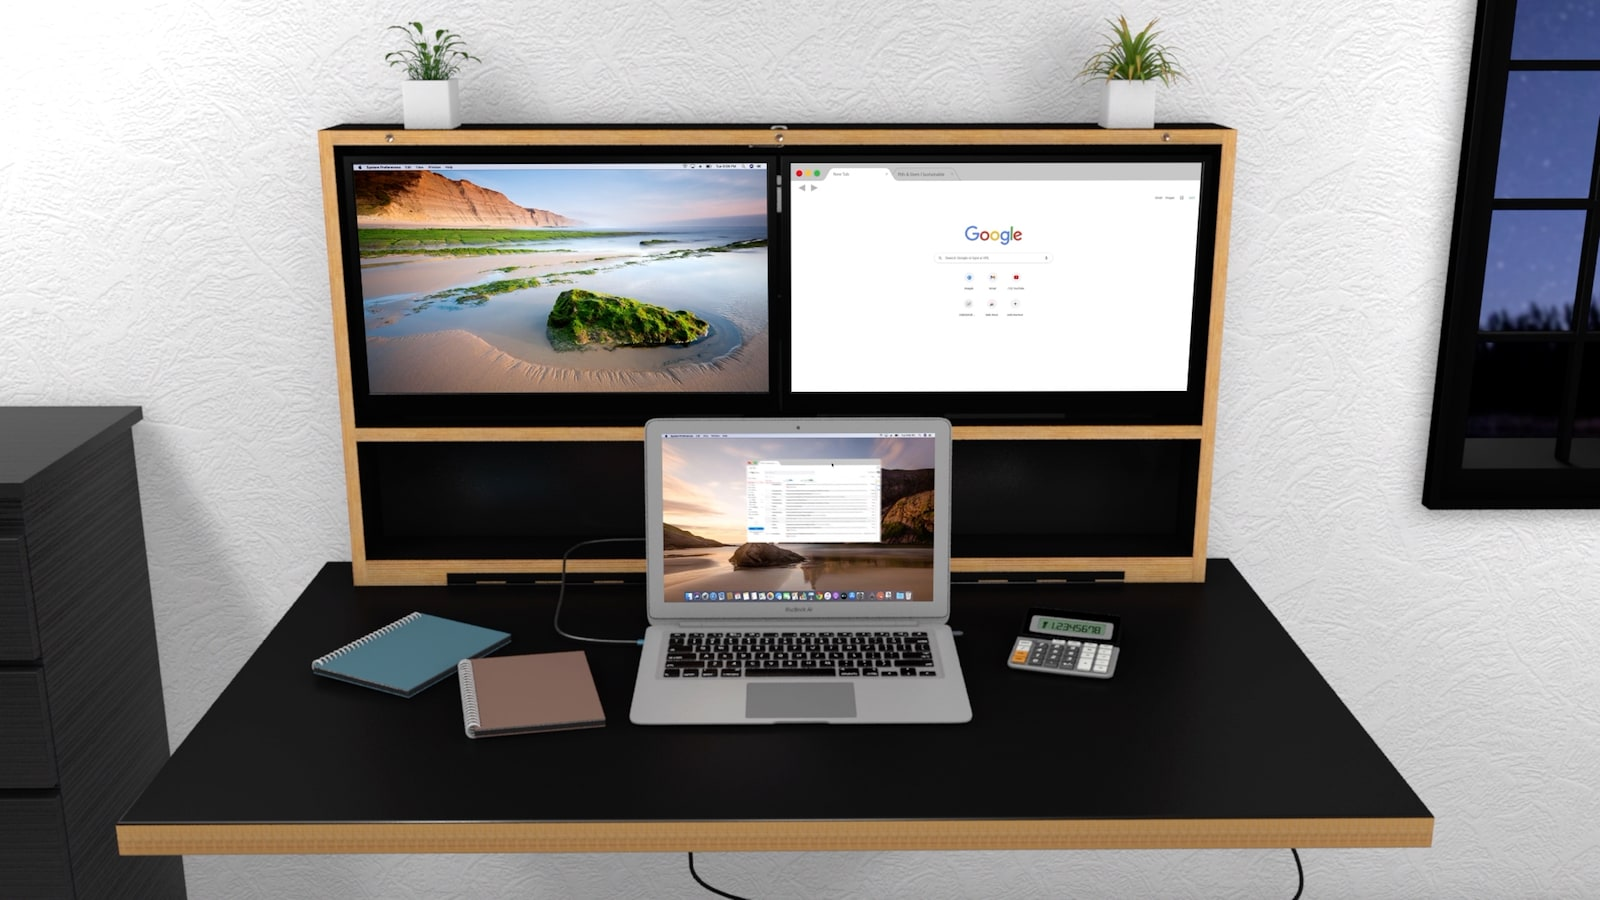 Pith & Stem DropTop wall-mounted foldable workstation stows away behind artwork